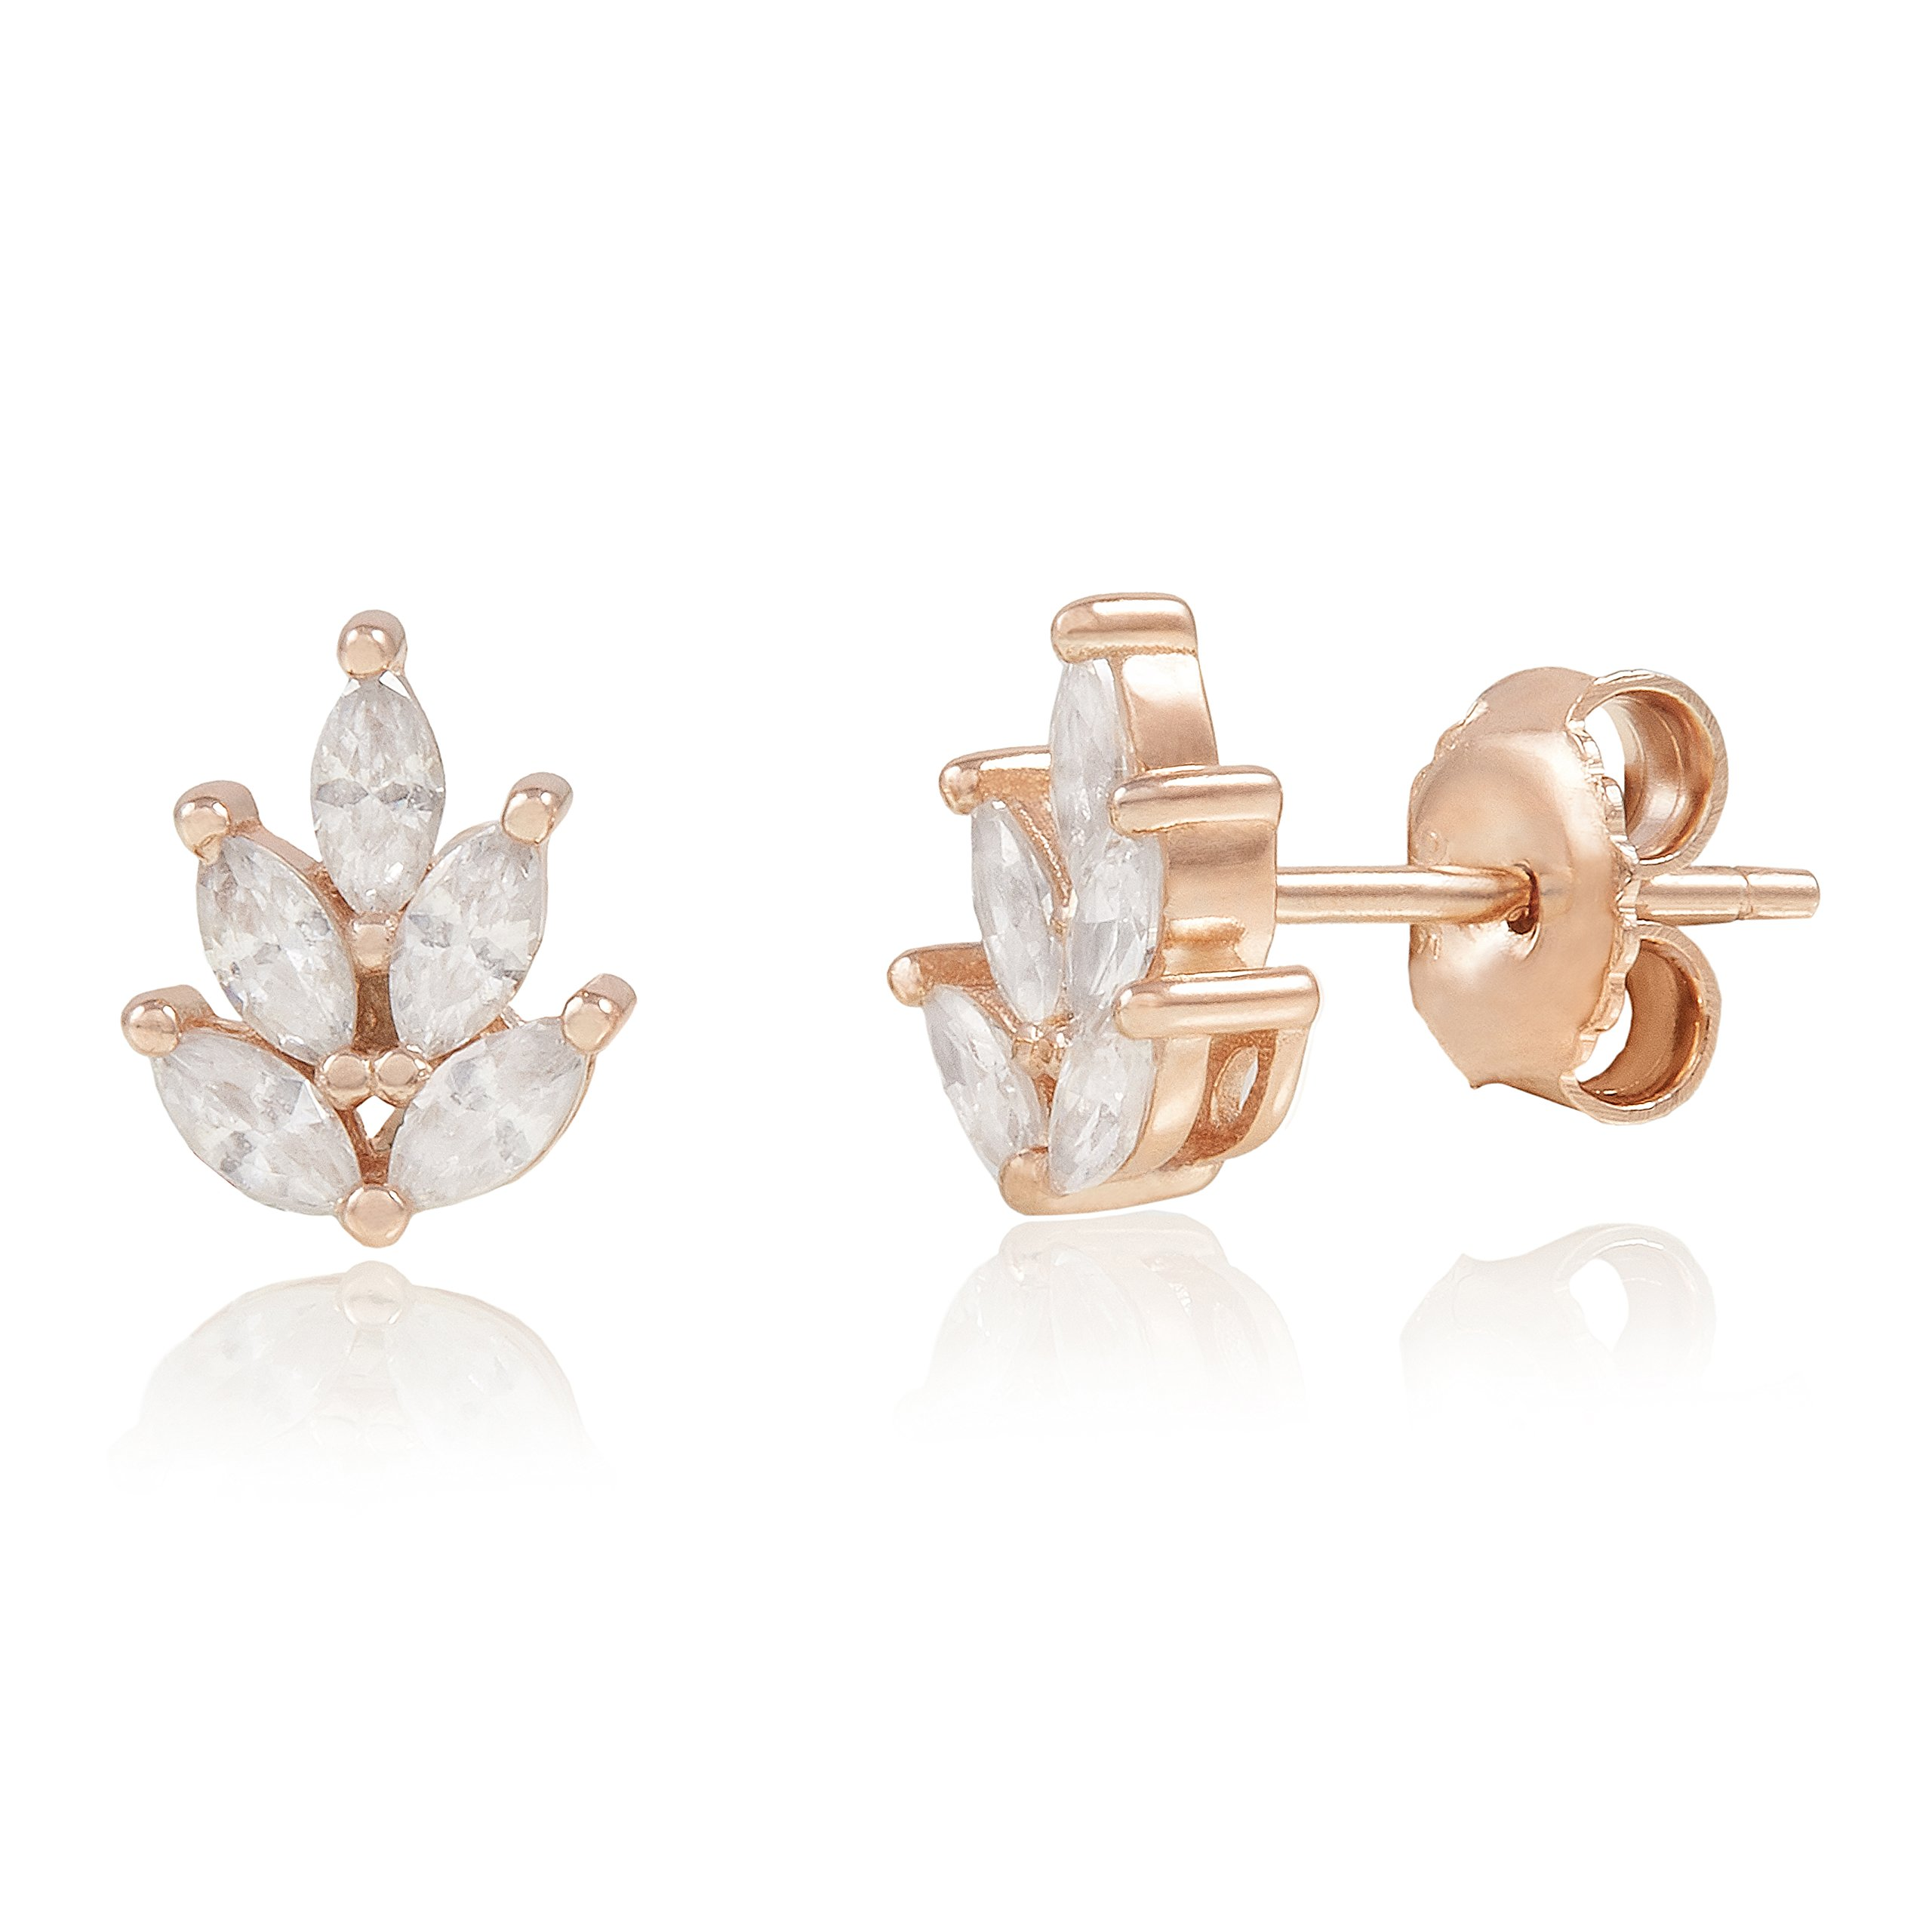 products danabronfman marquis oculus stud earring yg hammered marquise earrings studs